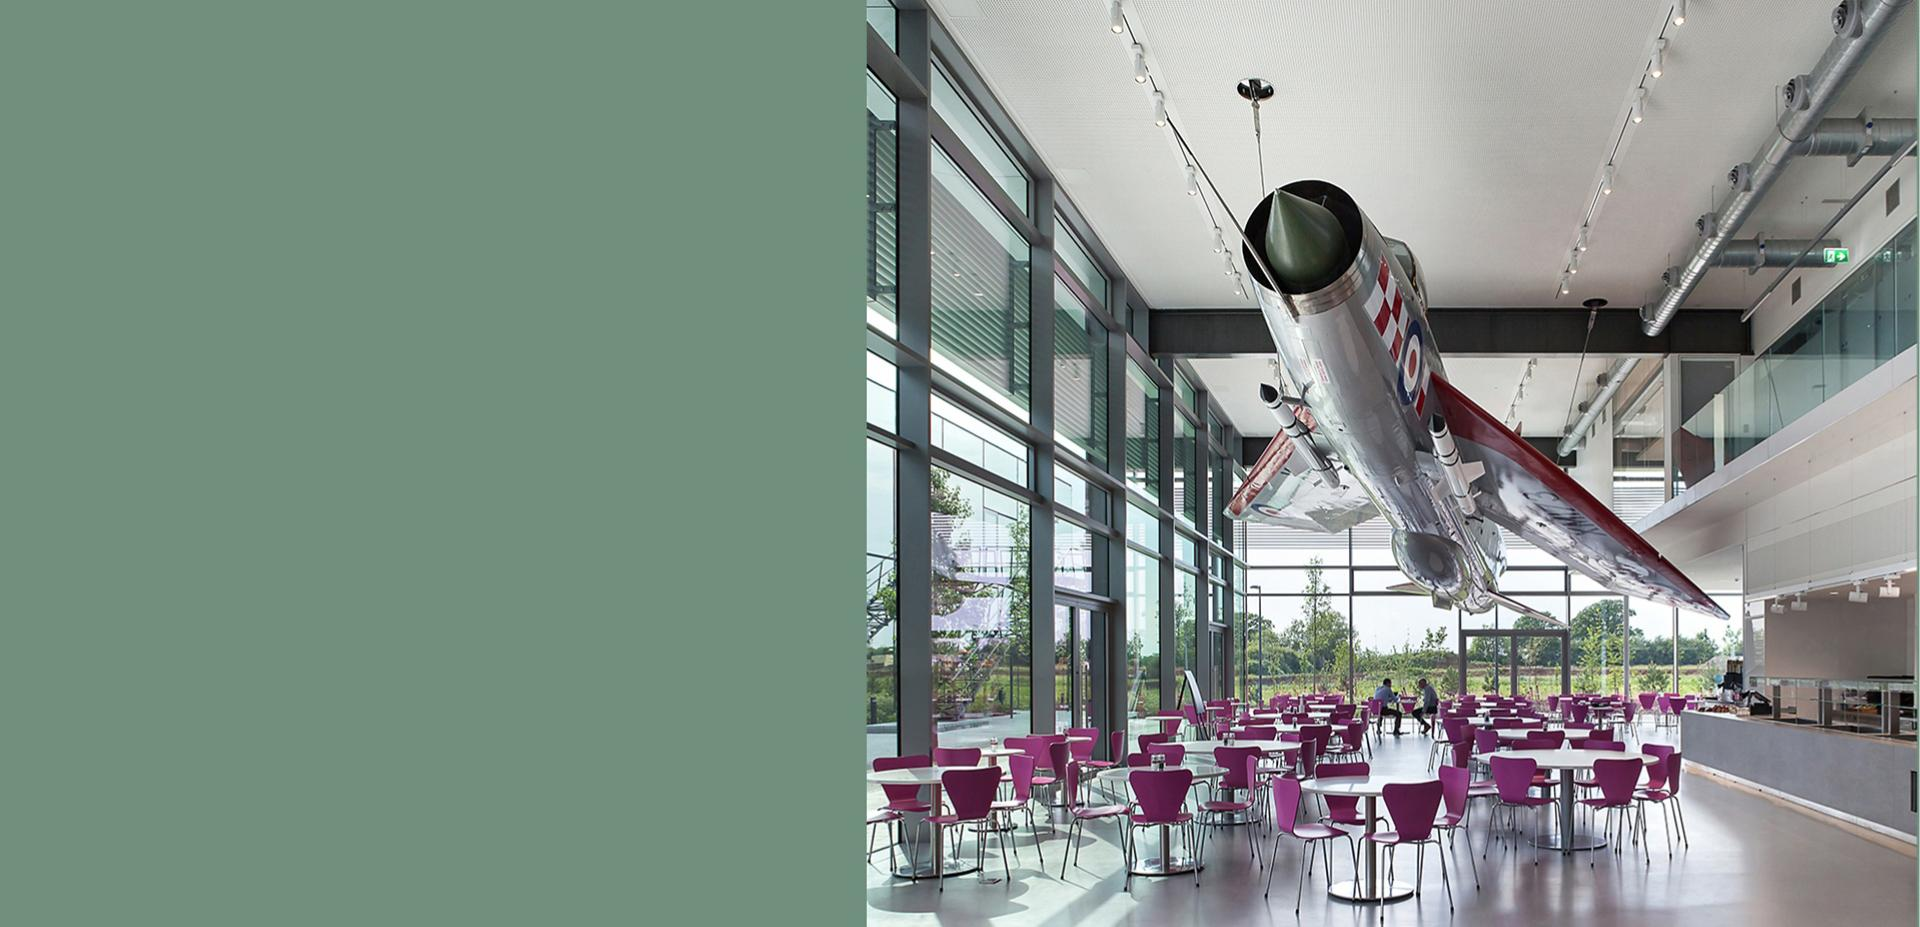 Dyson café with English Electric Lightning jet